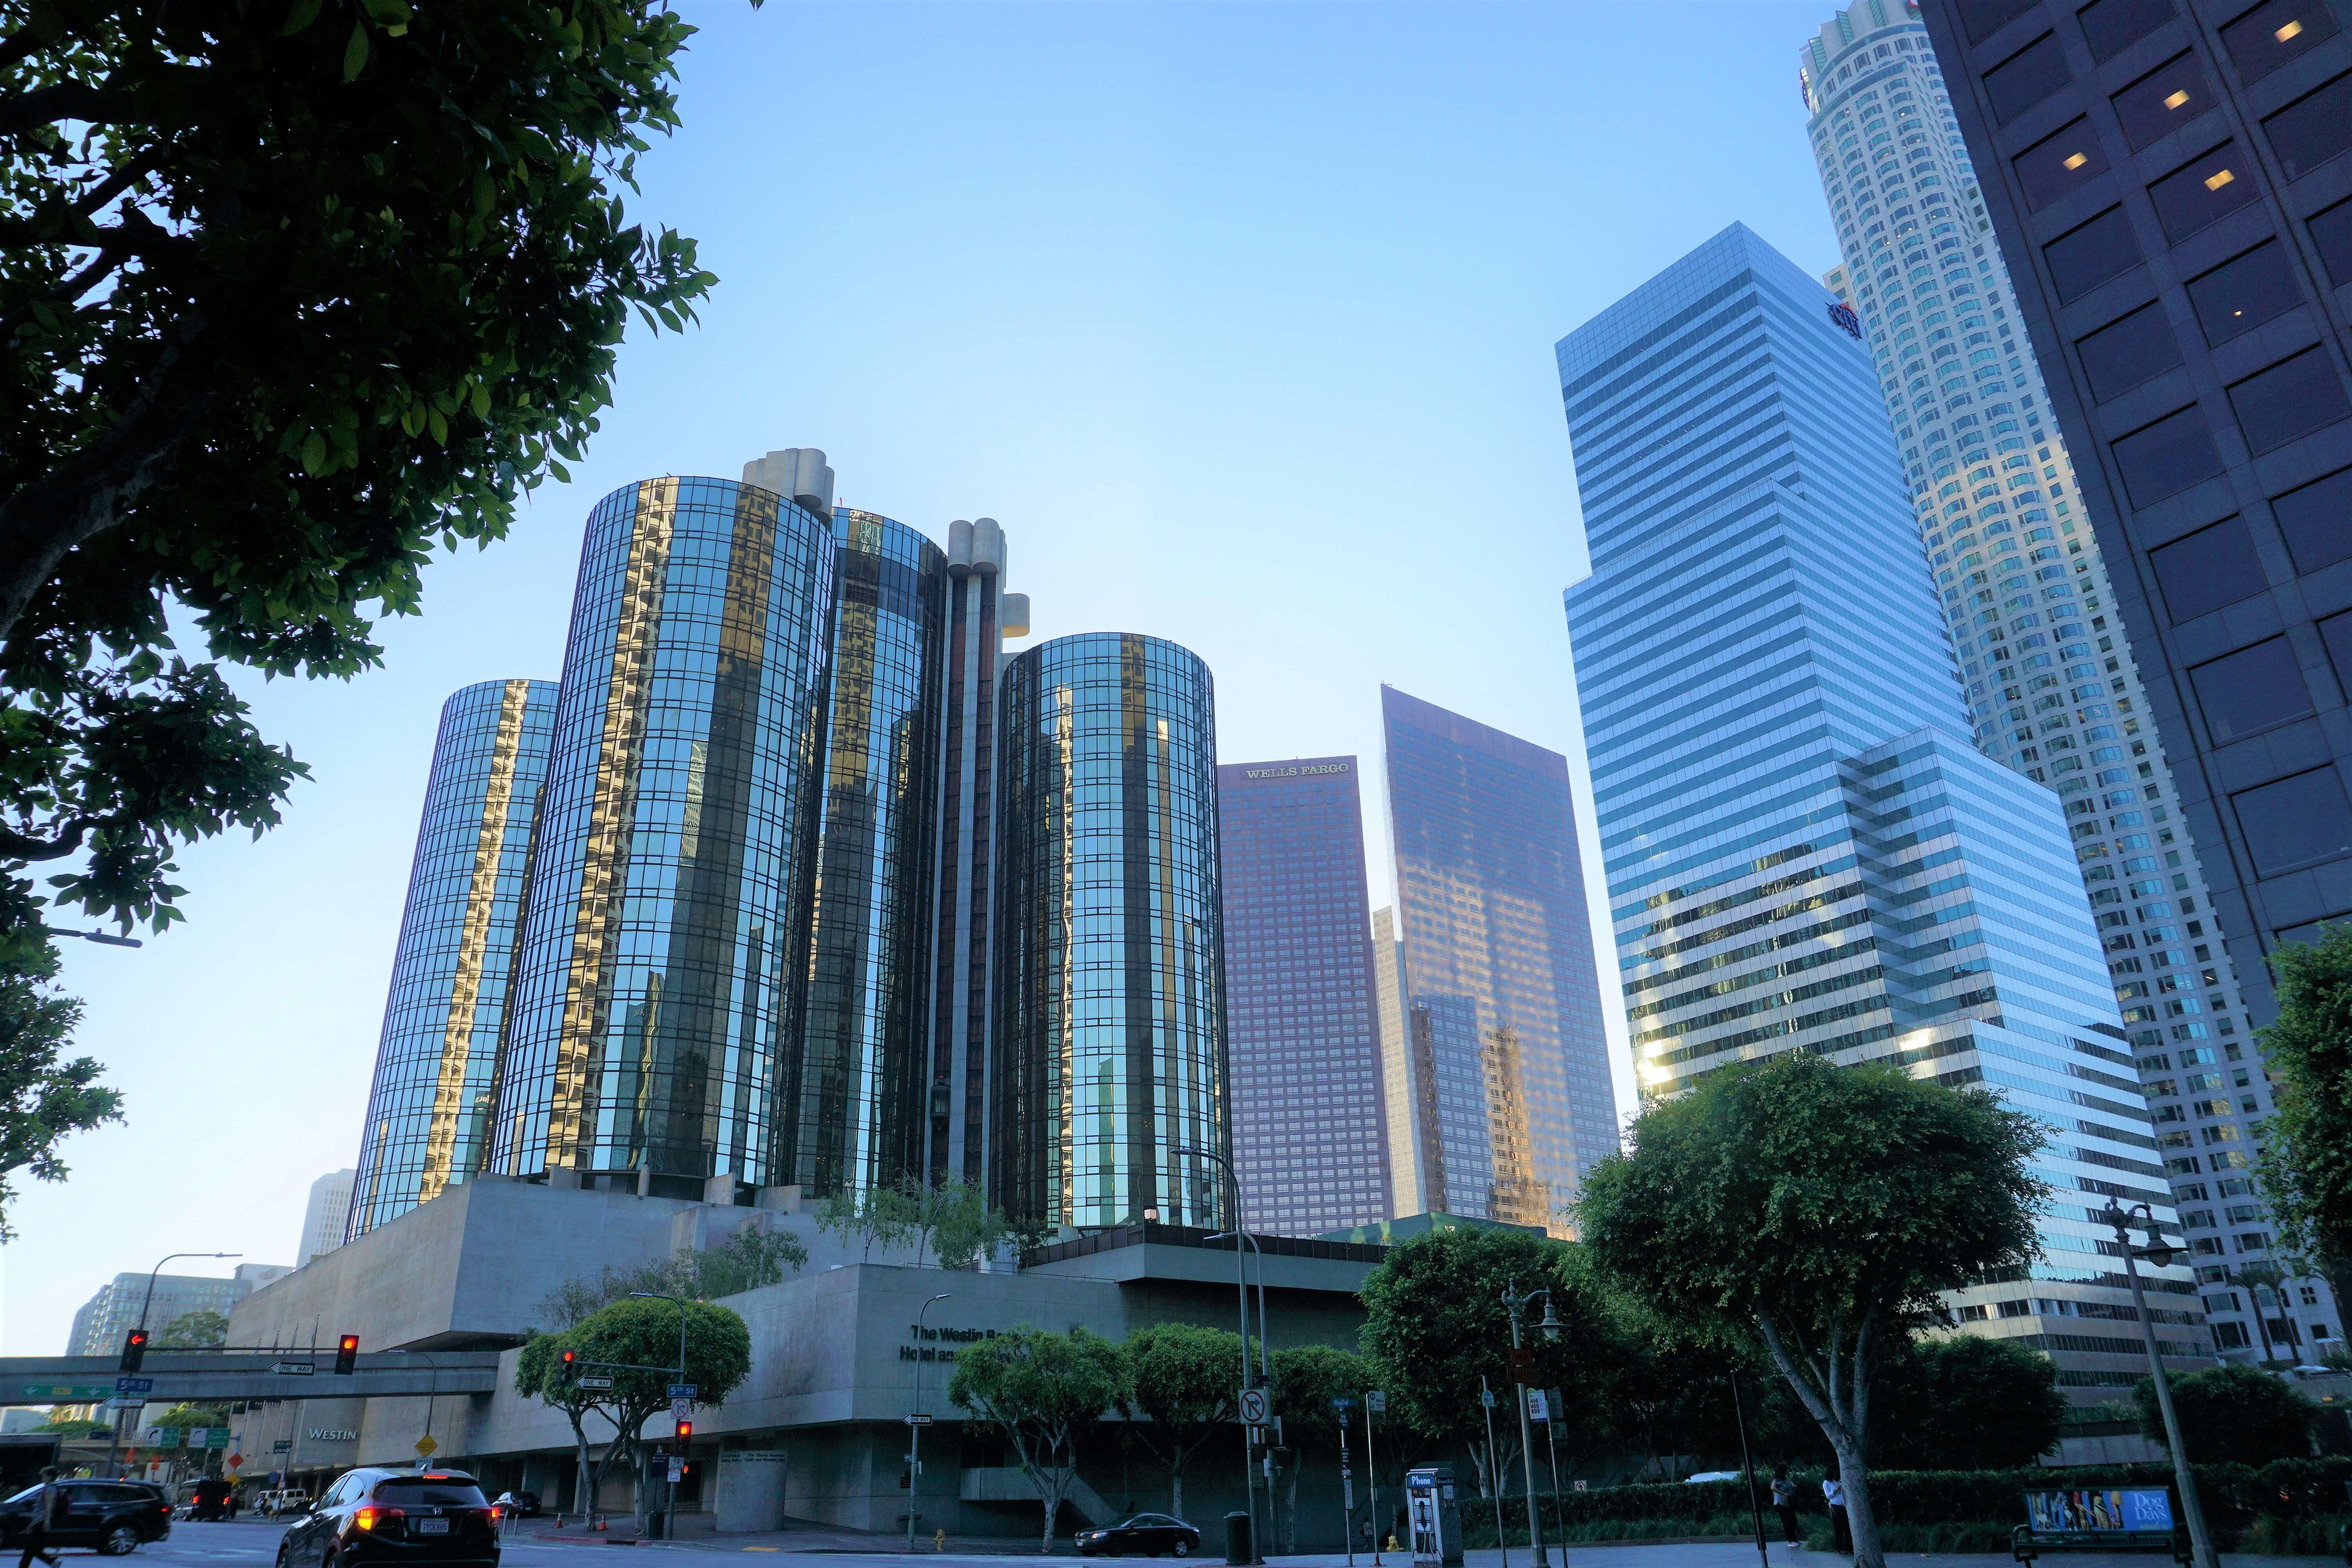 High rise buildings in Downtown Los Angeles